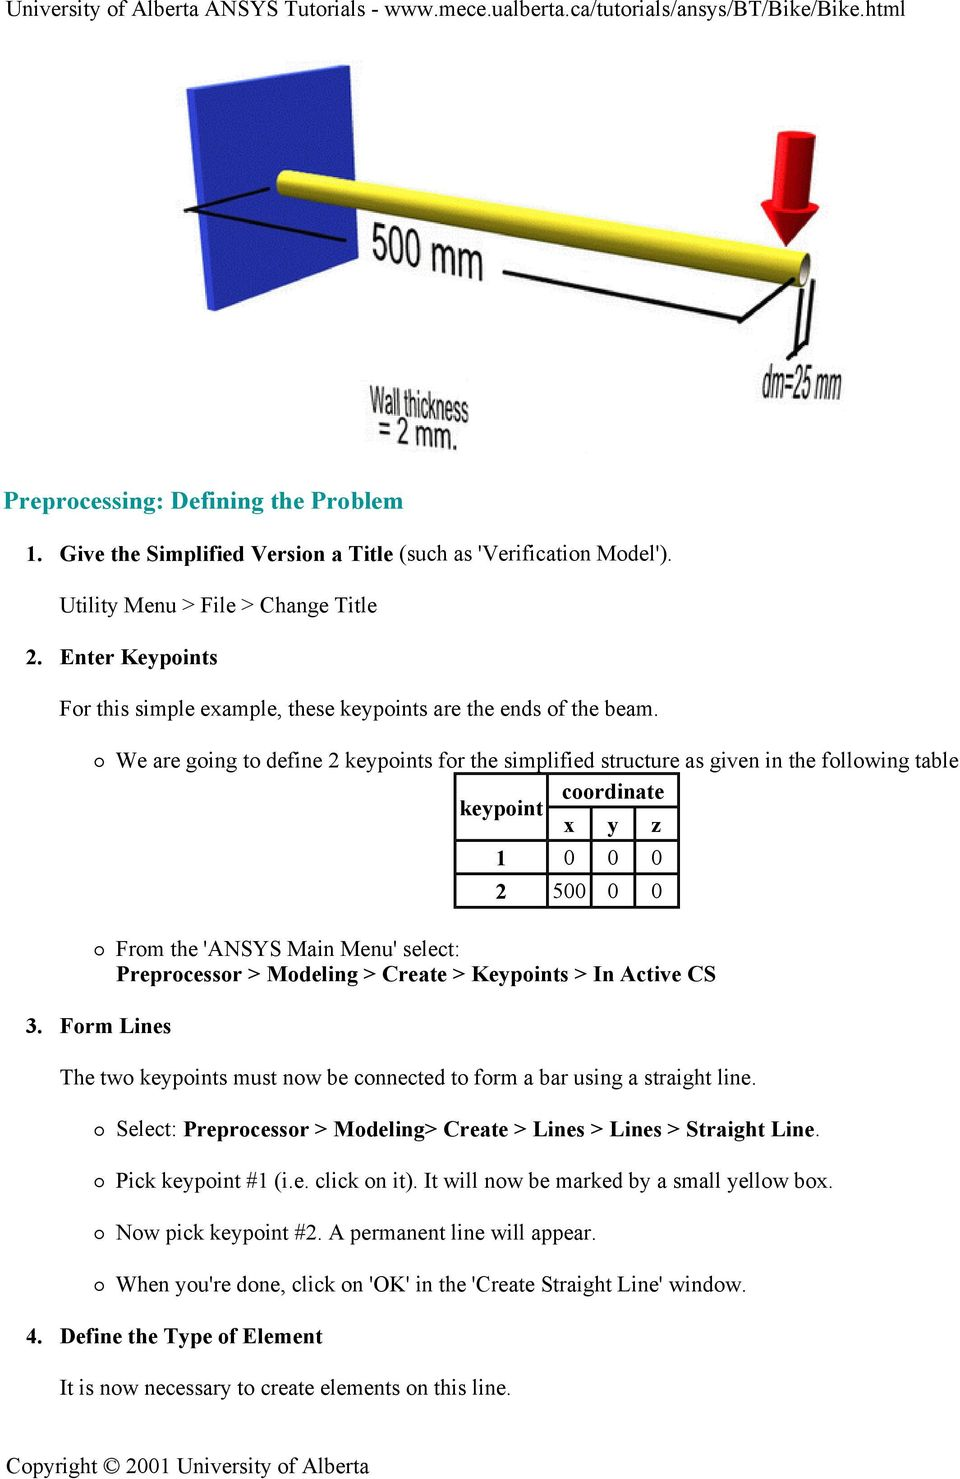 University of Alberta ANSYS Tutorials - Space Frame Example